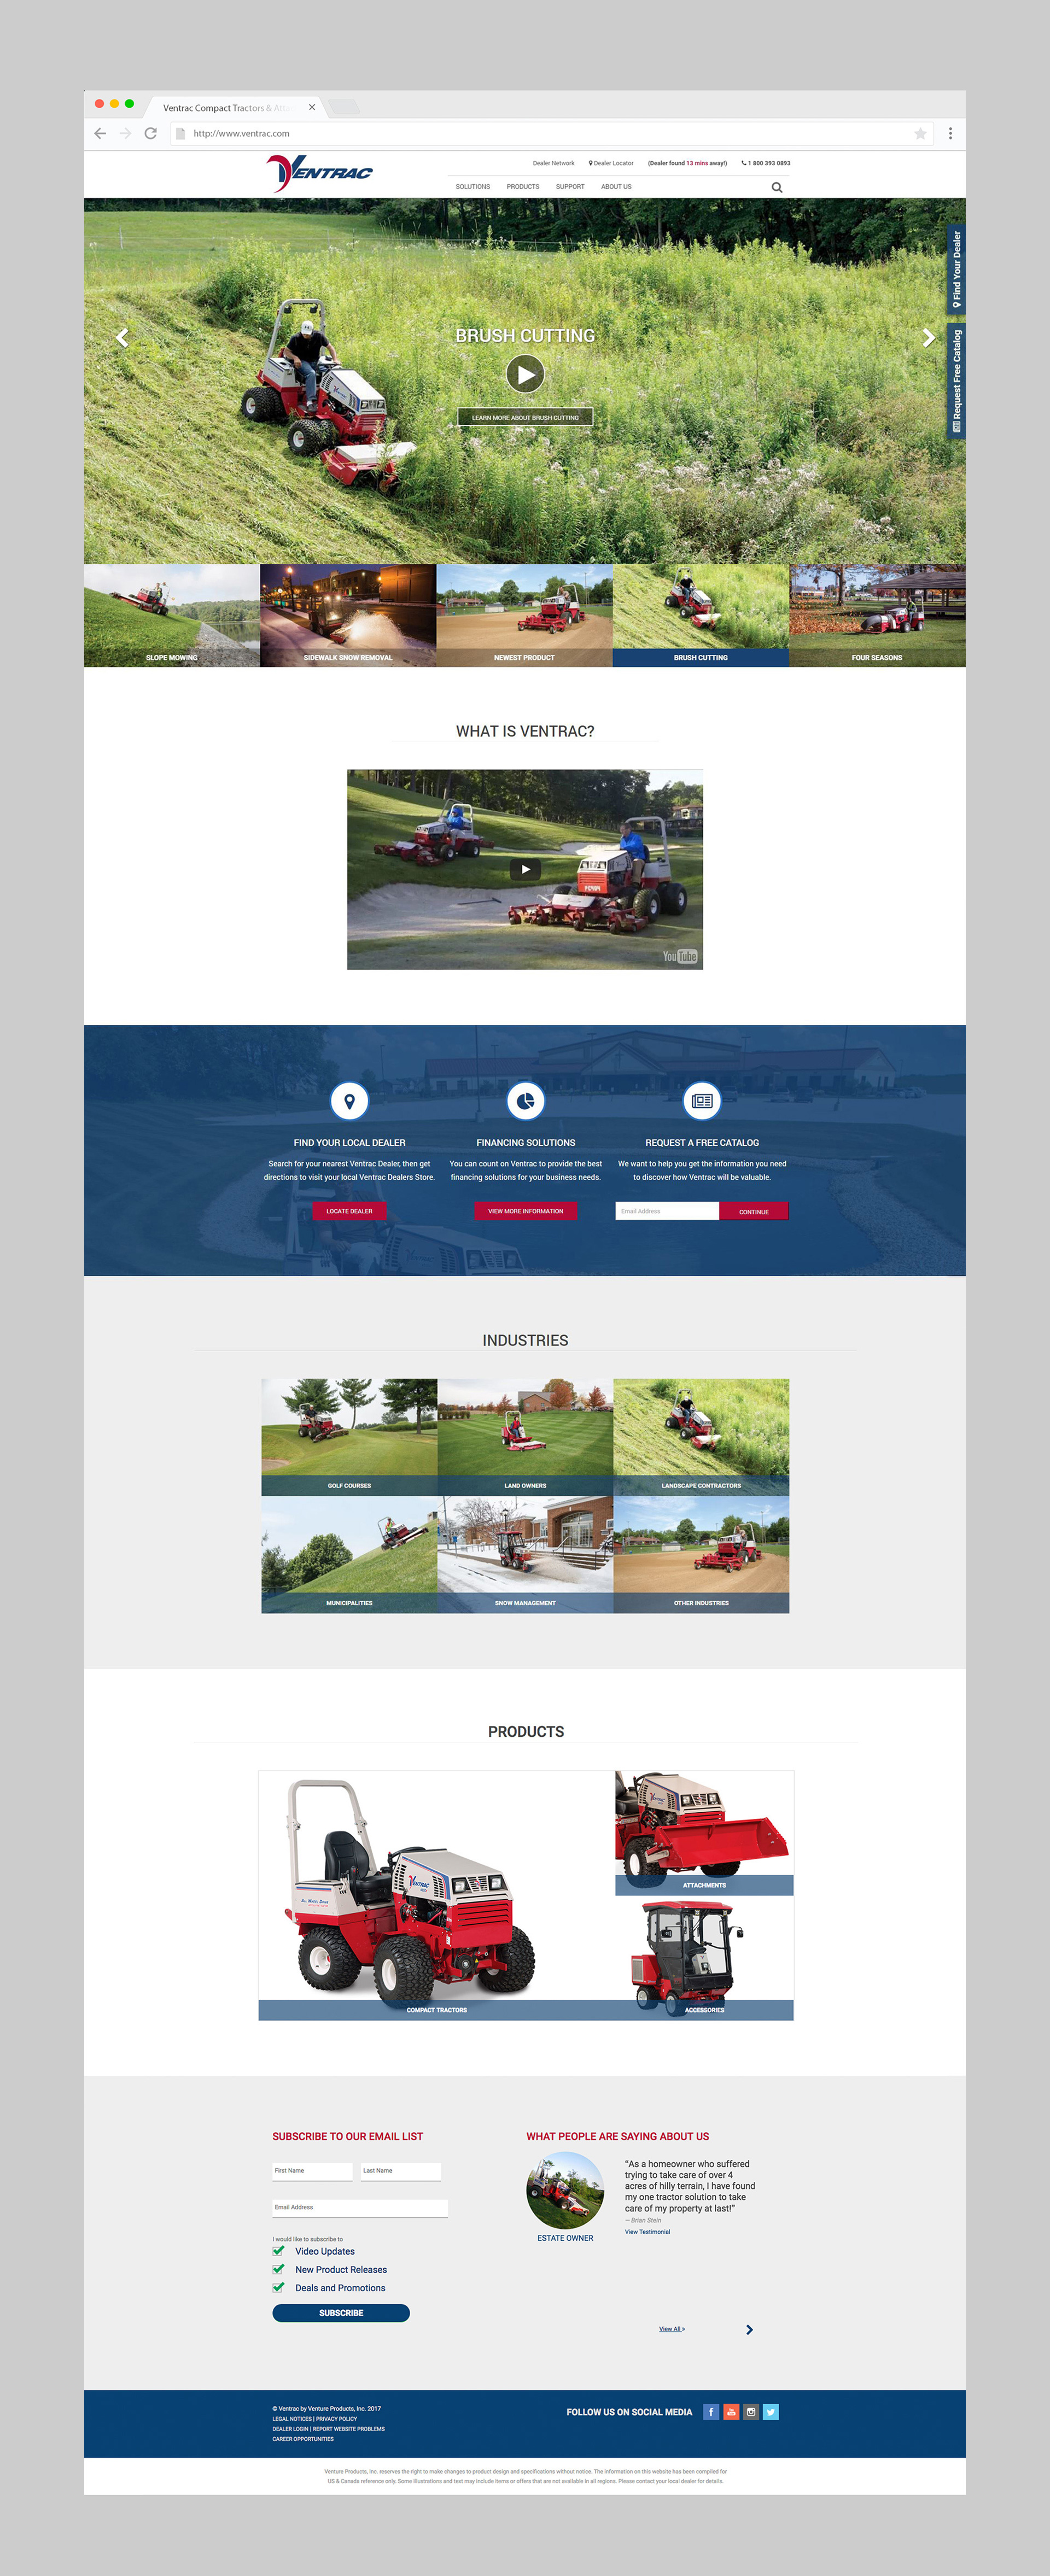 Ventrac Homepage Redesign